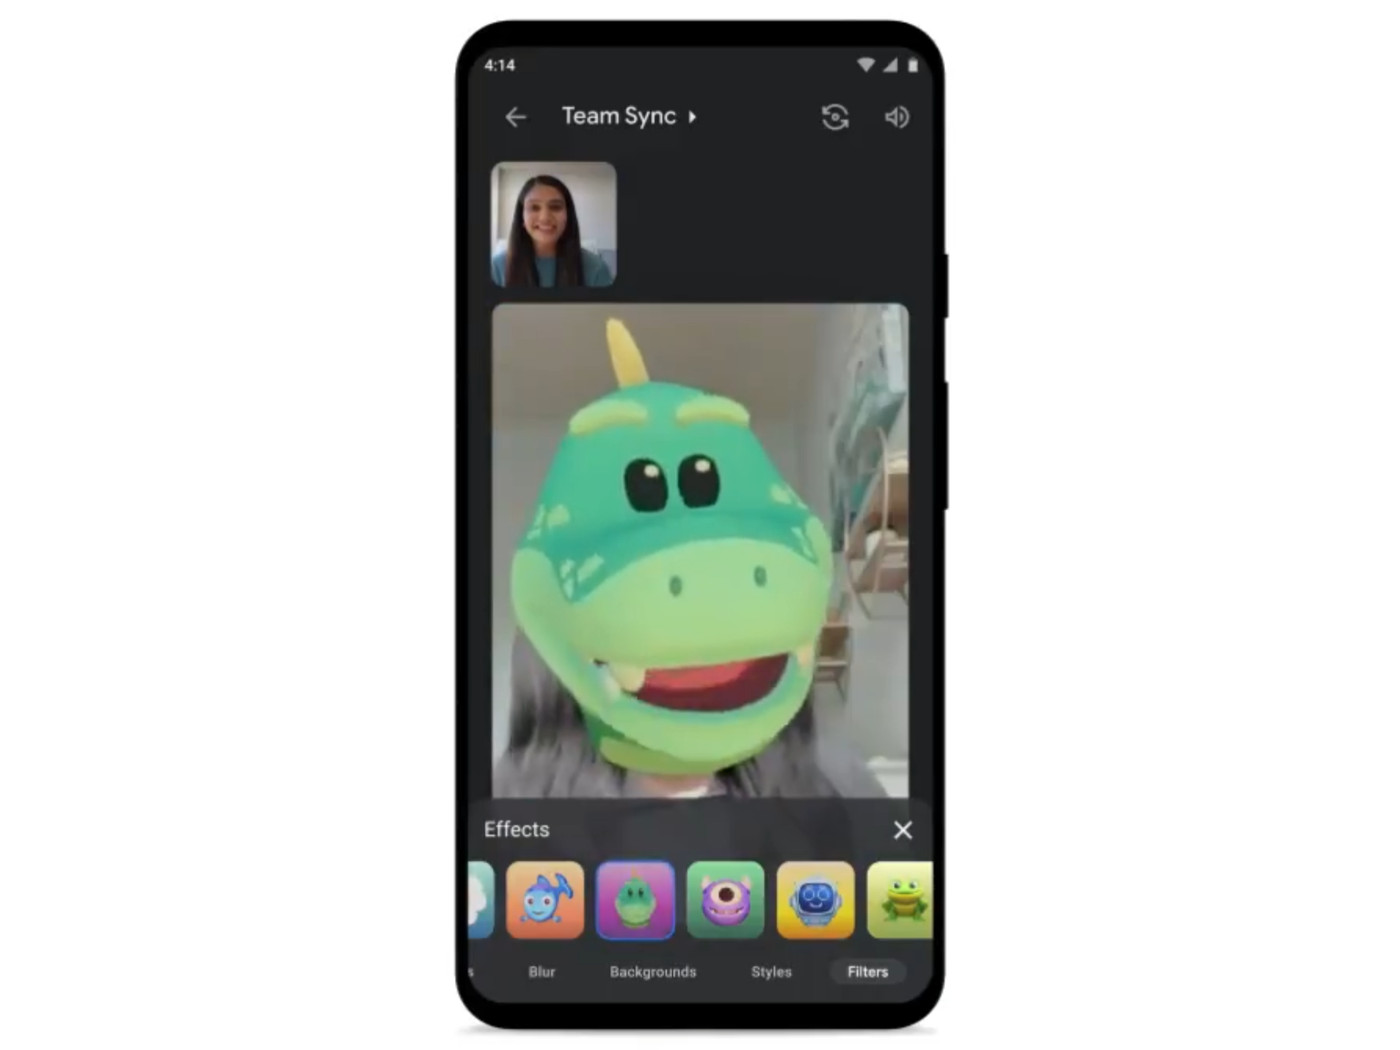 Google Meet adds Duo-style filters, AR masks, and effects - The Verge